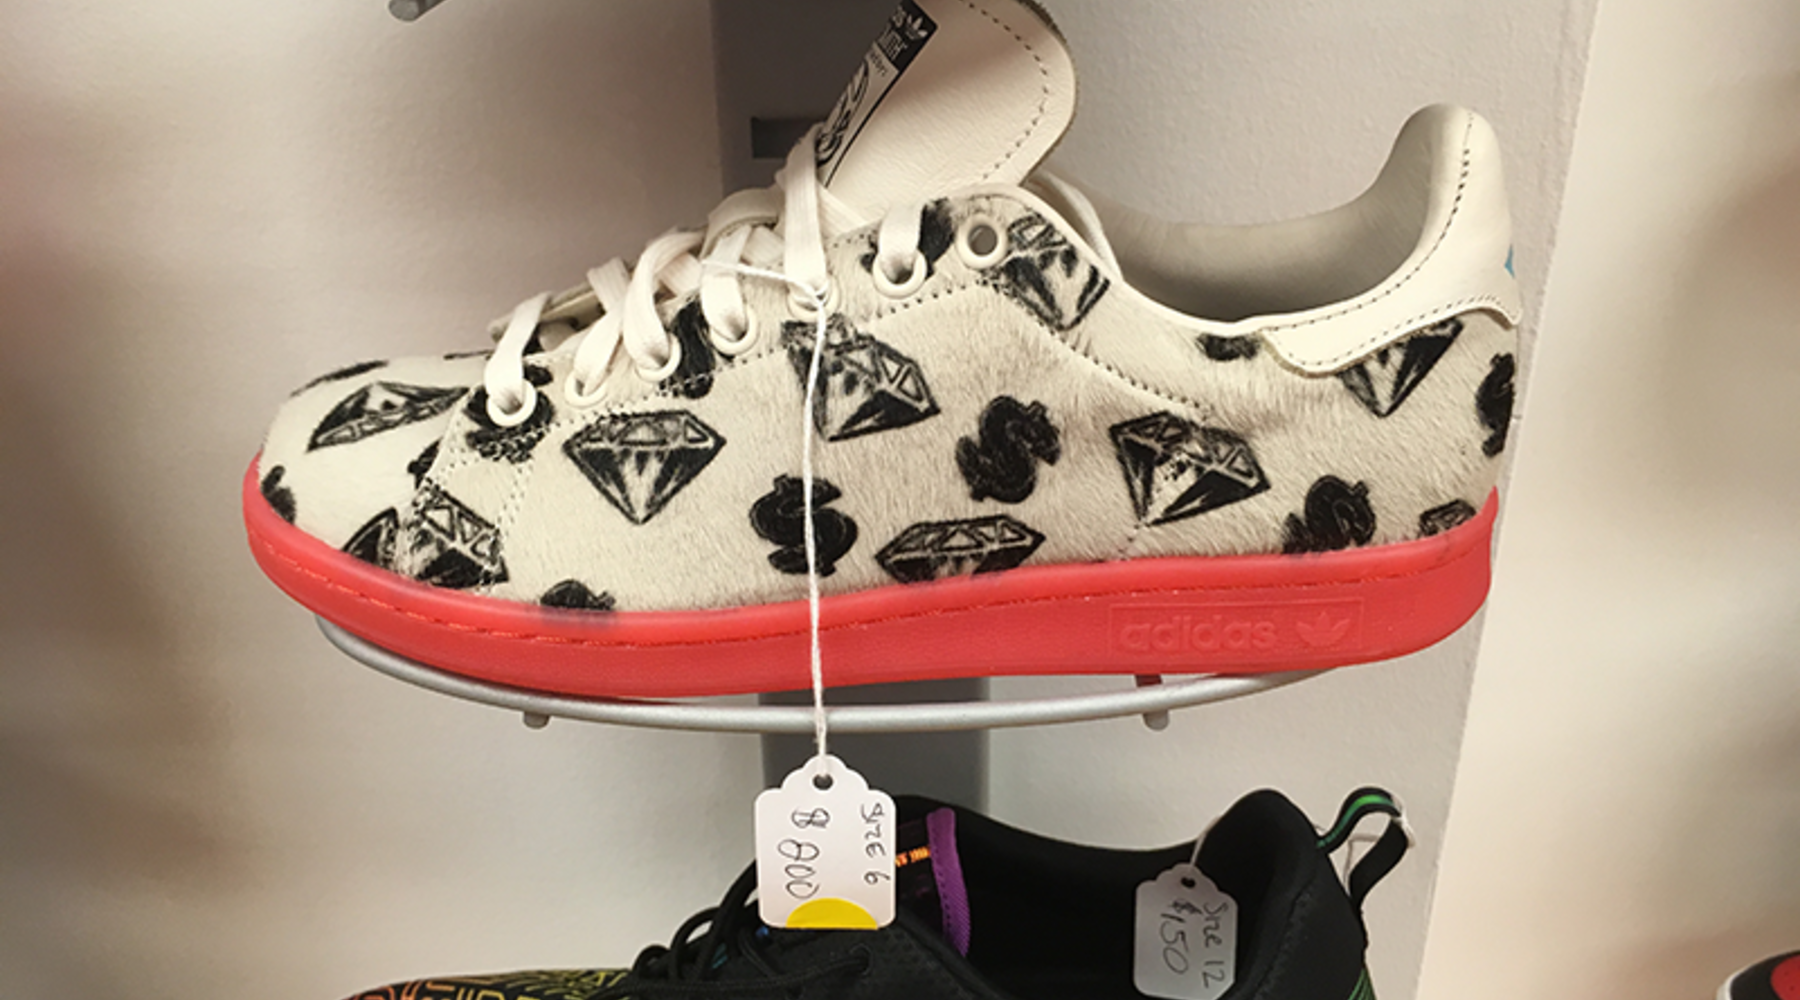 resale market for sneakers is red hot